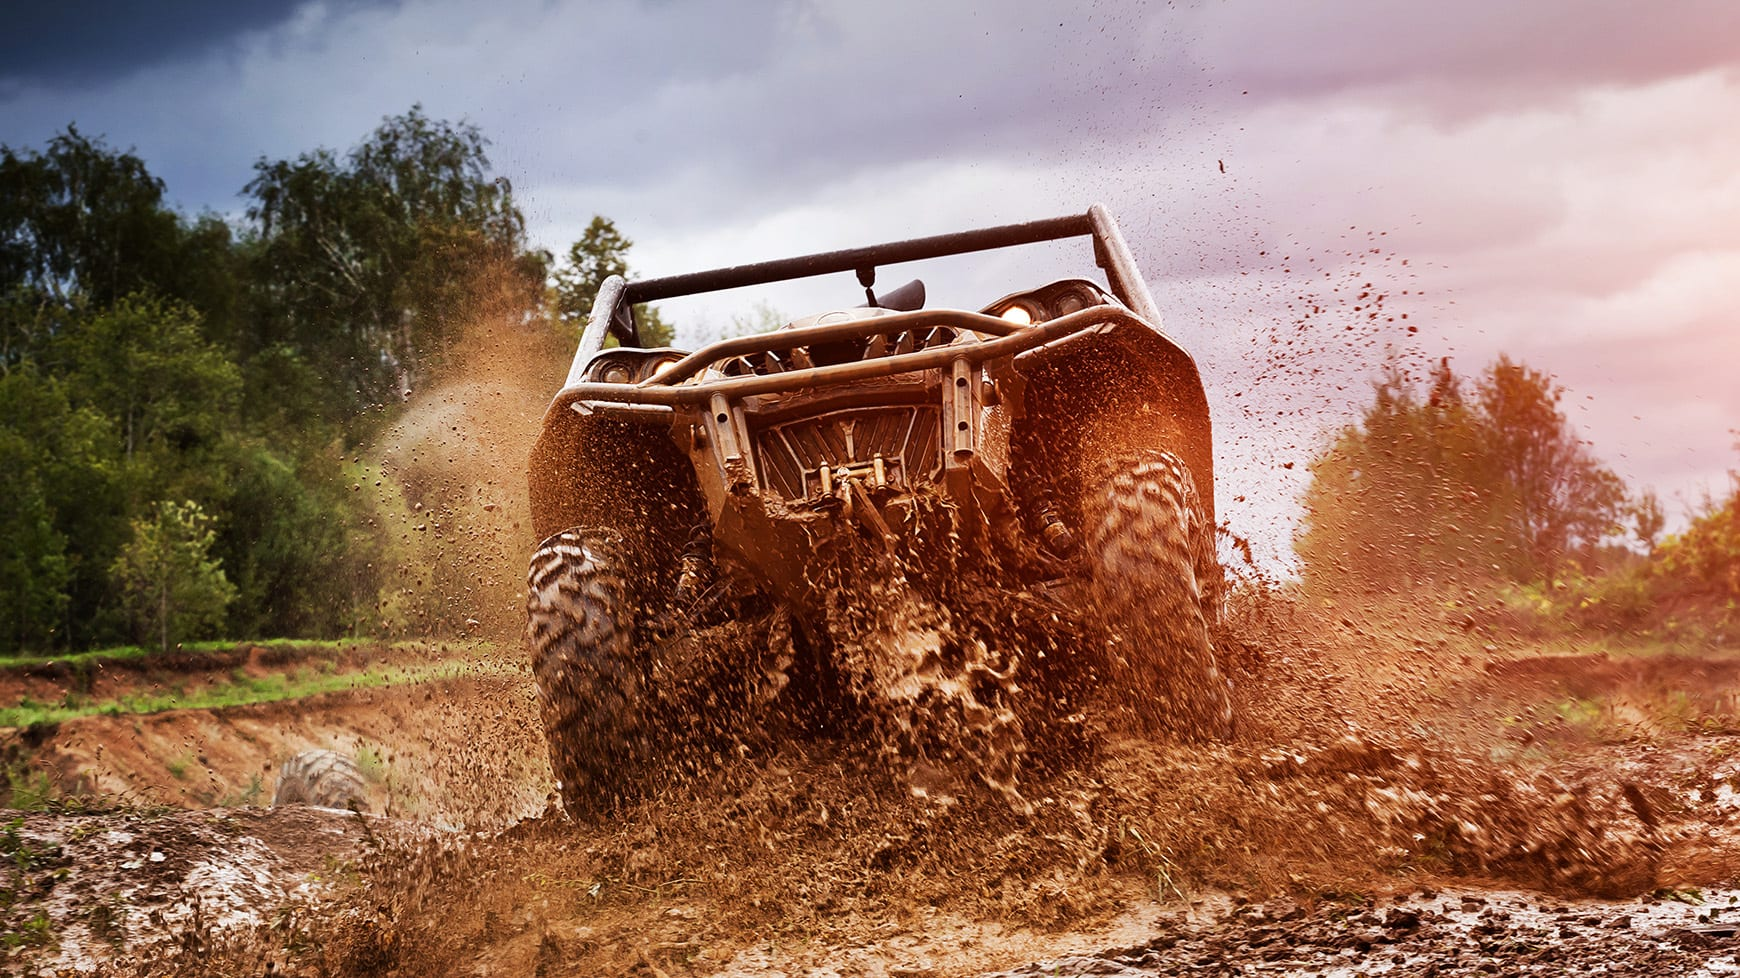 ATV Driving Through Mud Equipped with Mud Tires